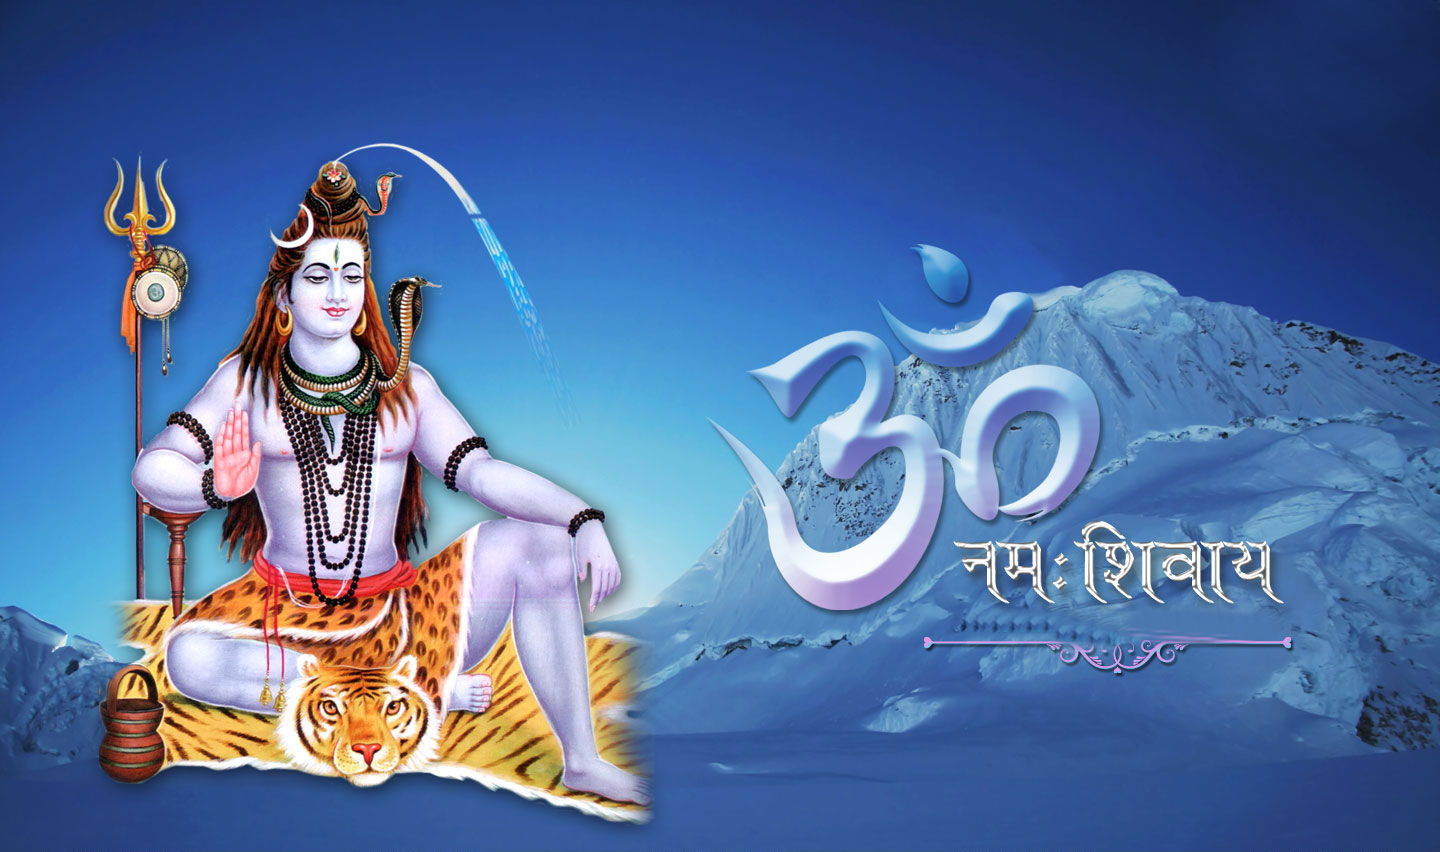 Lord Shiva Desktop Wallpapers Hd: Lord Shiva Wallpaper And Beautiful Images